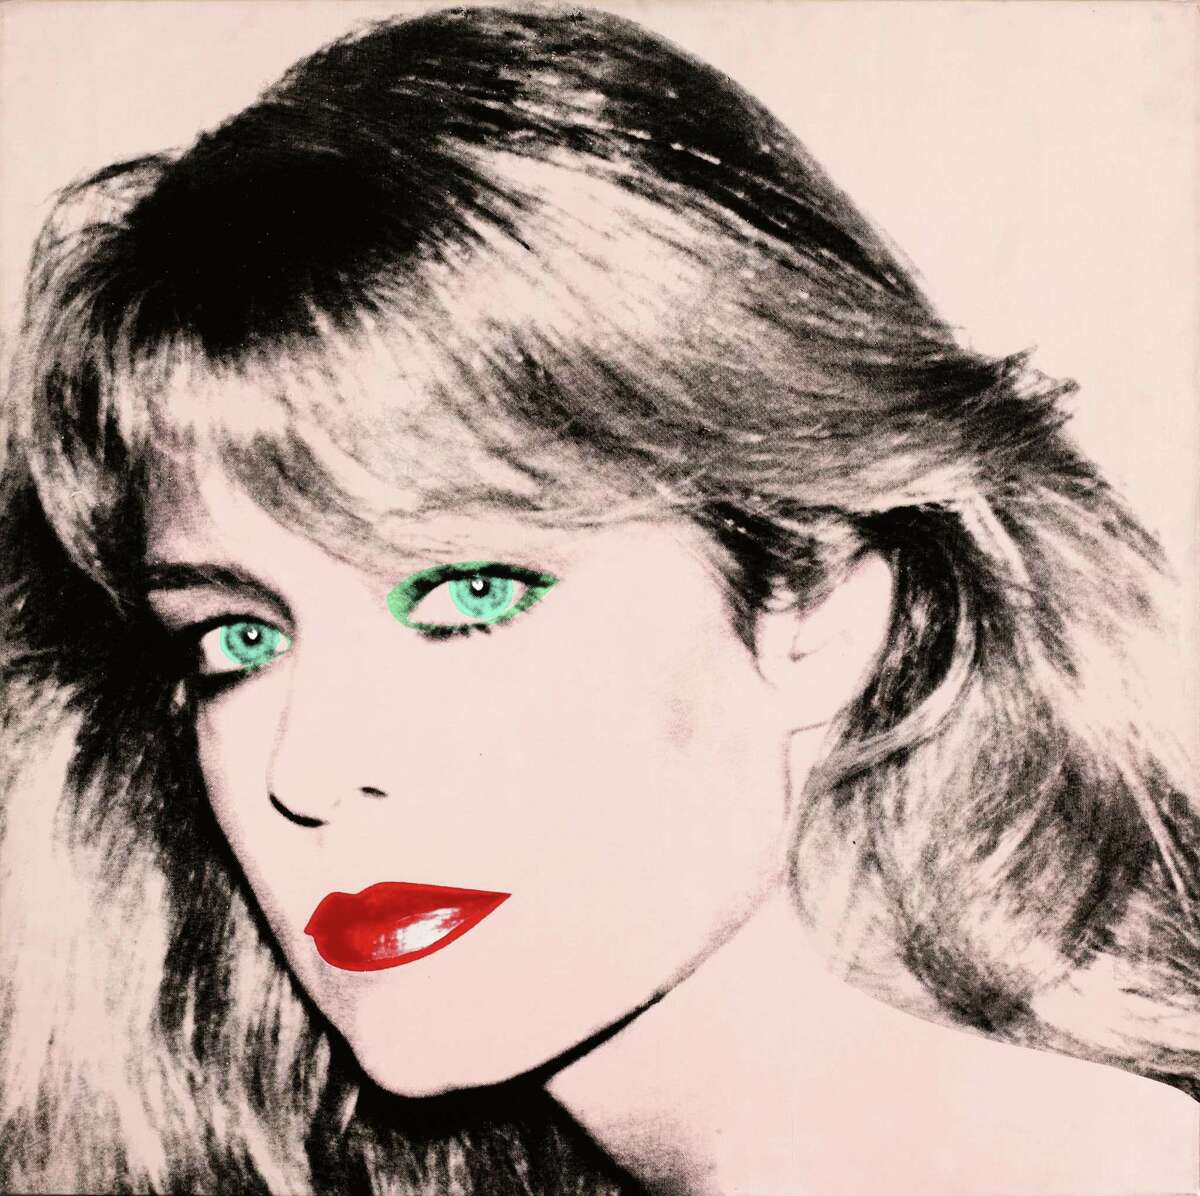 A jury will decide if this Andy Warhol portrait of Farrah Fawcett should belong to actor Ryan O'Neal or the University of Texas at Austin.